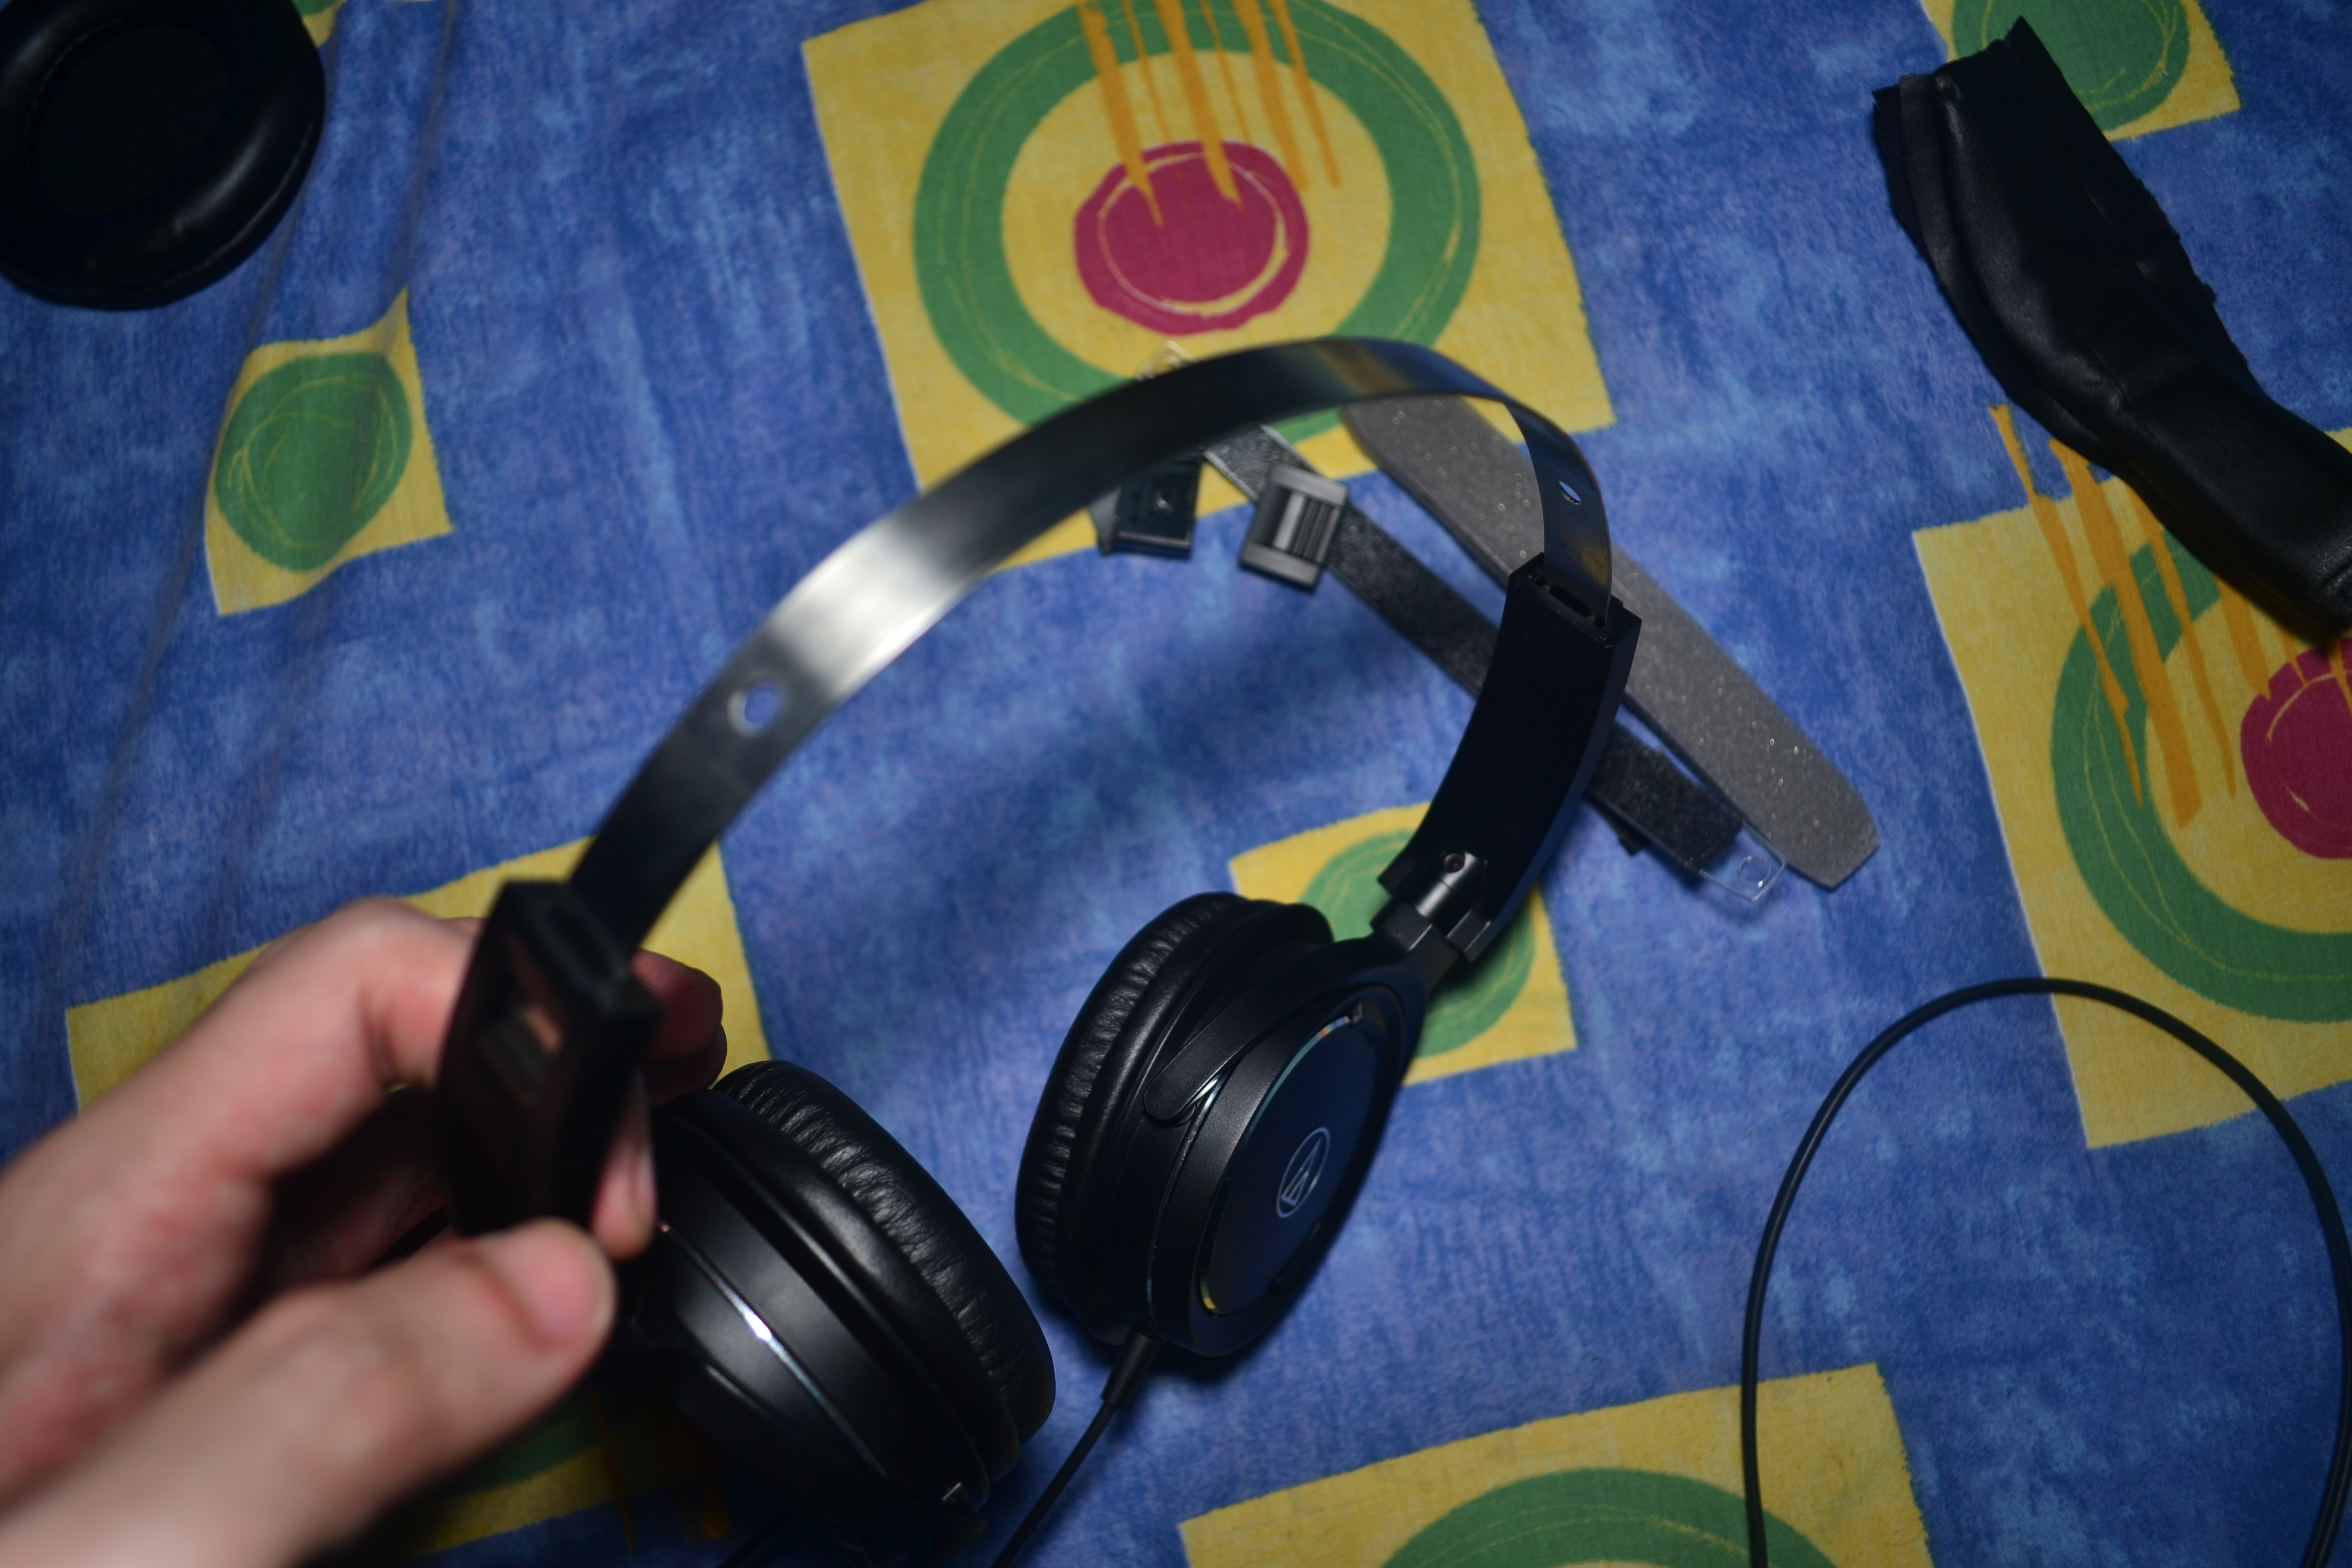 Audio Technica Solid Bass Over Ear Headphones Ath Ws55bk Earphone Cks1100is Overall These Babies Are Worth The Purchase They Definitely Great Sounding Balanced Mids And Highs Very Clear Given A Punchy To